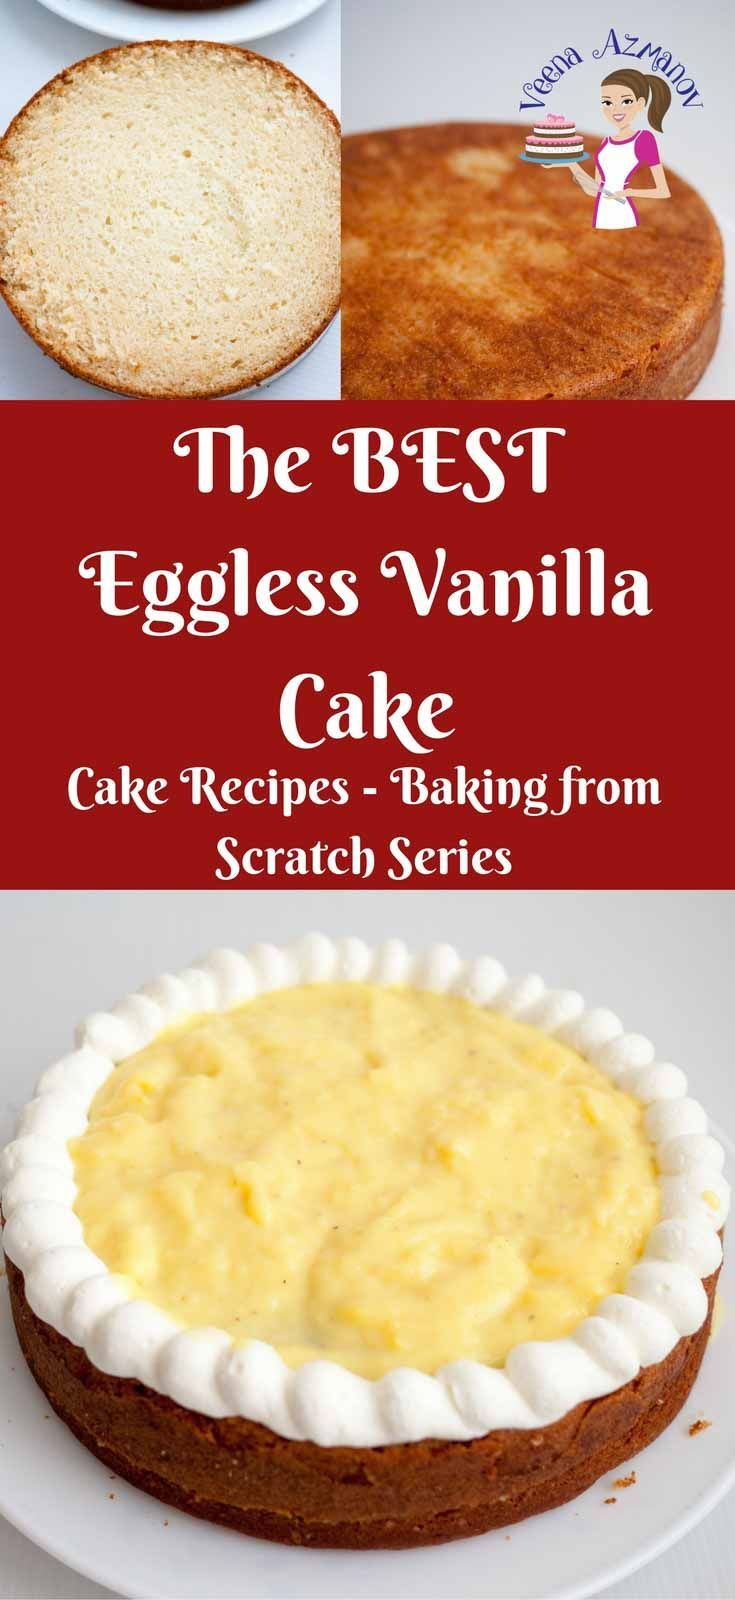 The Best Eggless Vanilla Cake Recipe This Best Eggless Vanilla Cake Is Moist With A Firm Texture Eggless Vanilla Cake Recipe Cake Recipes Dessert Recipes Easy